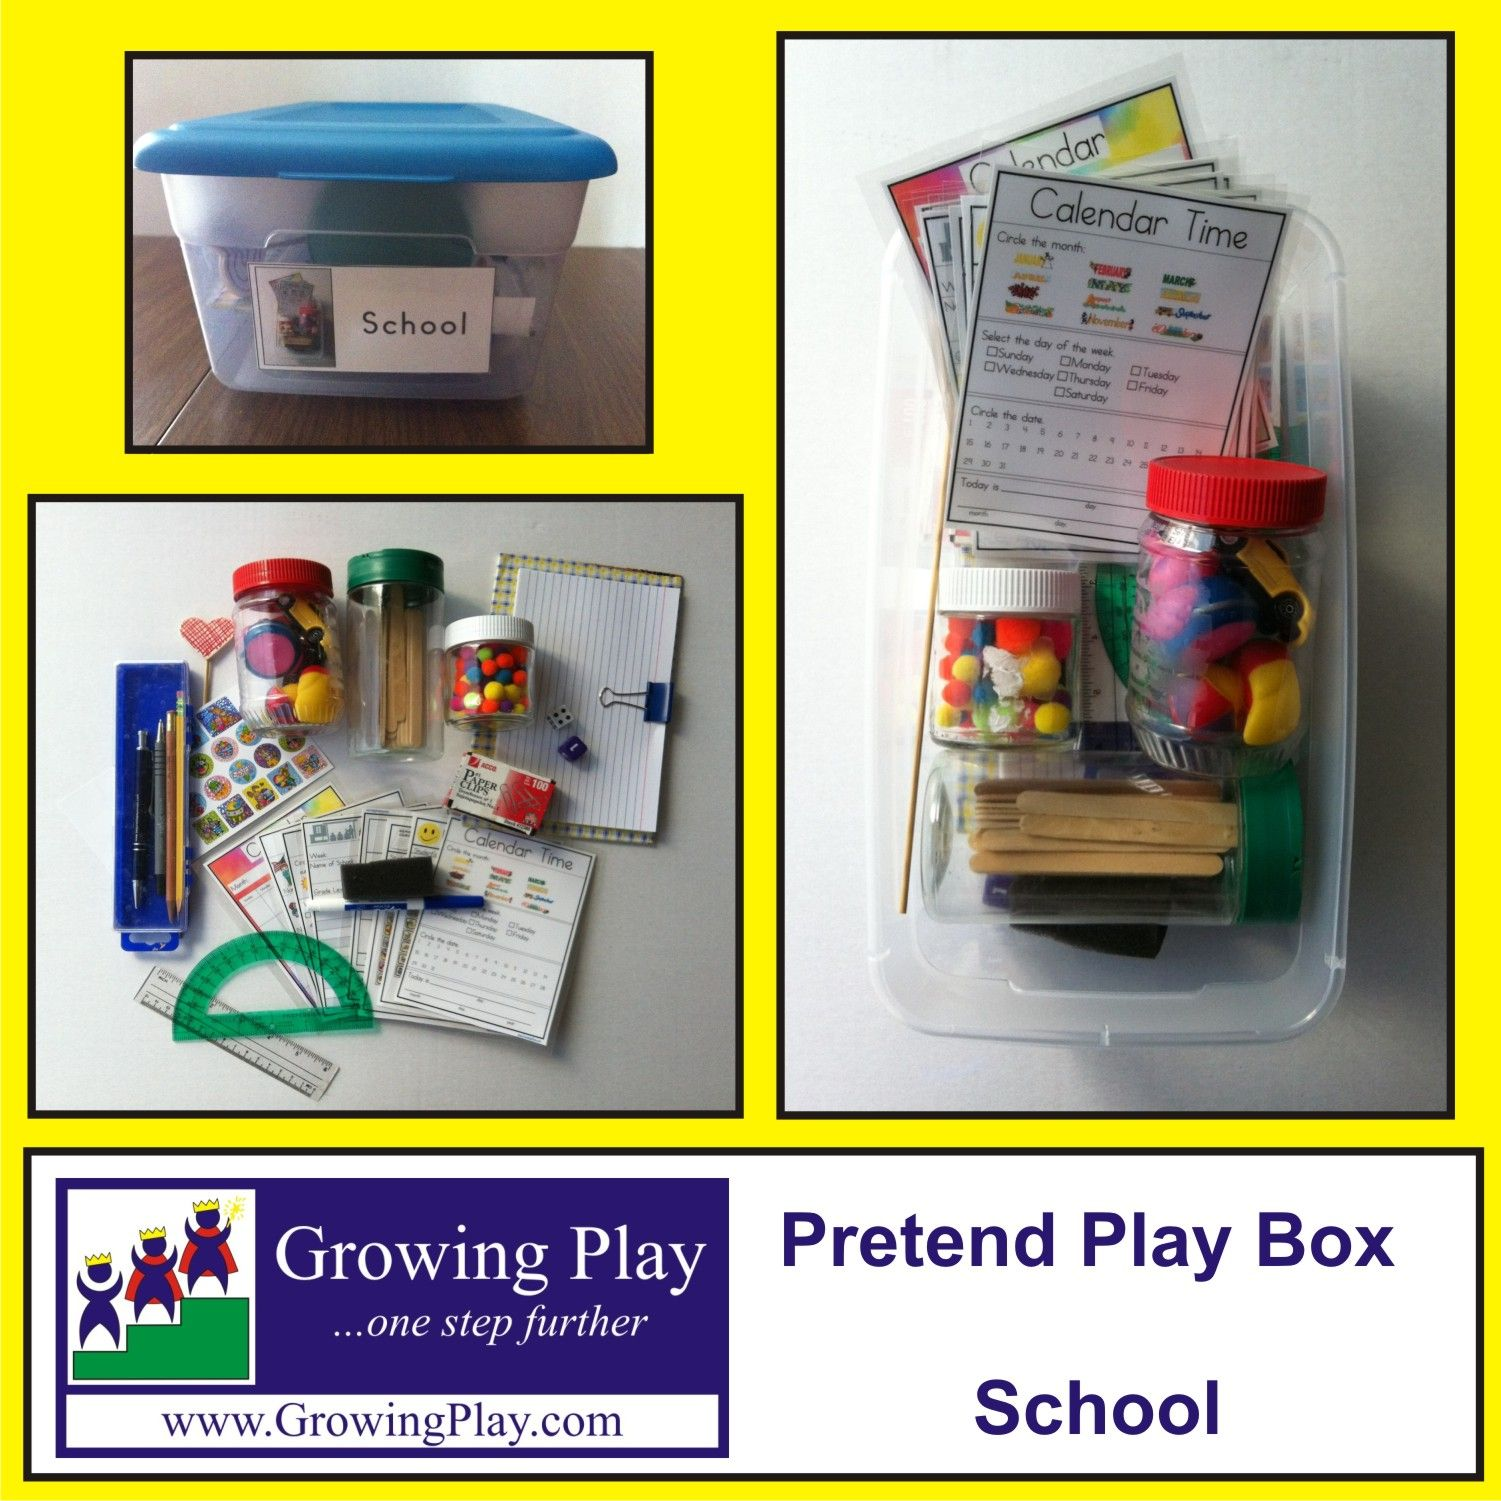 Pretend Play Box -School What's Inside: Inside This Box Is